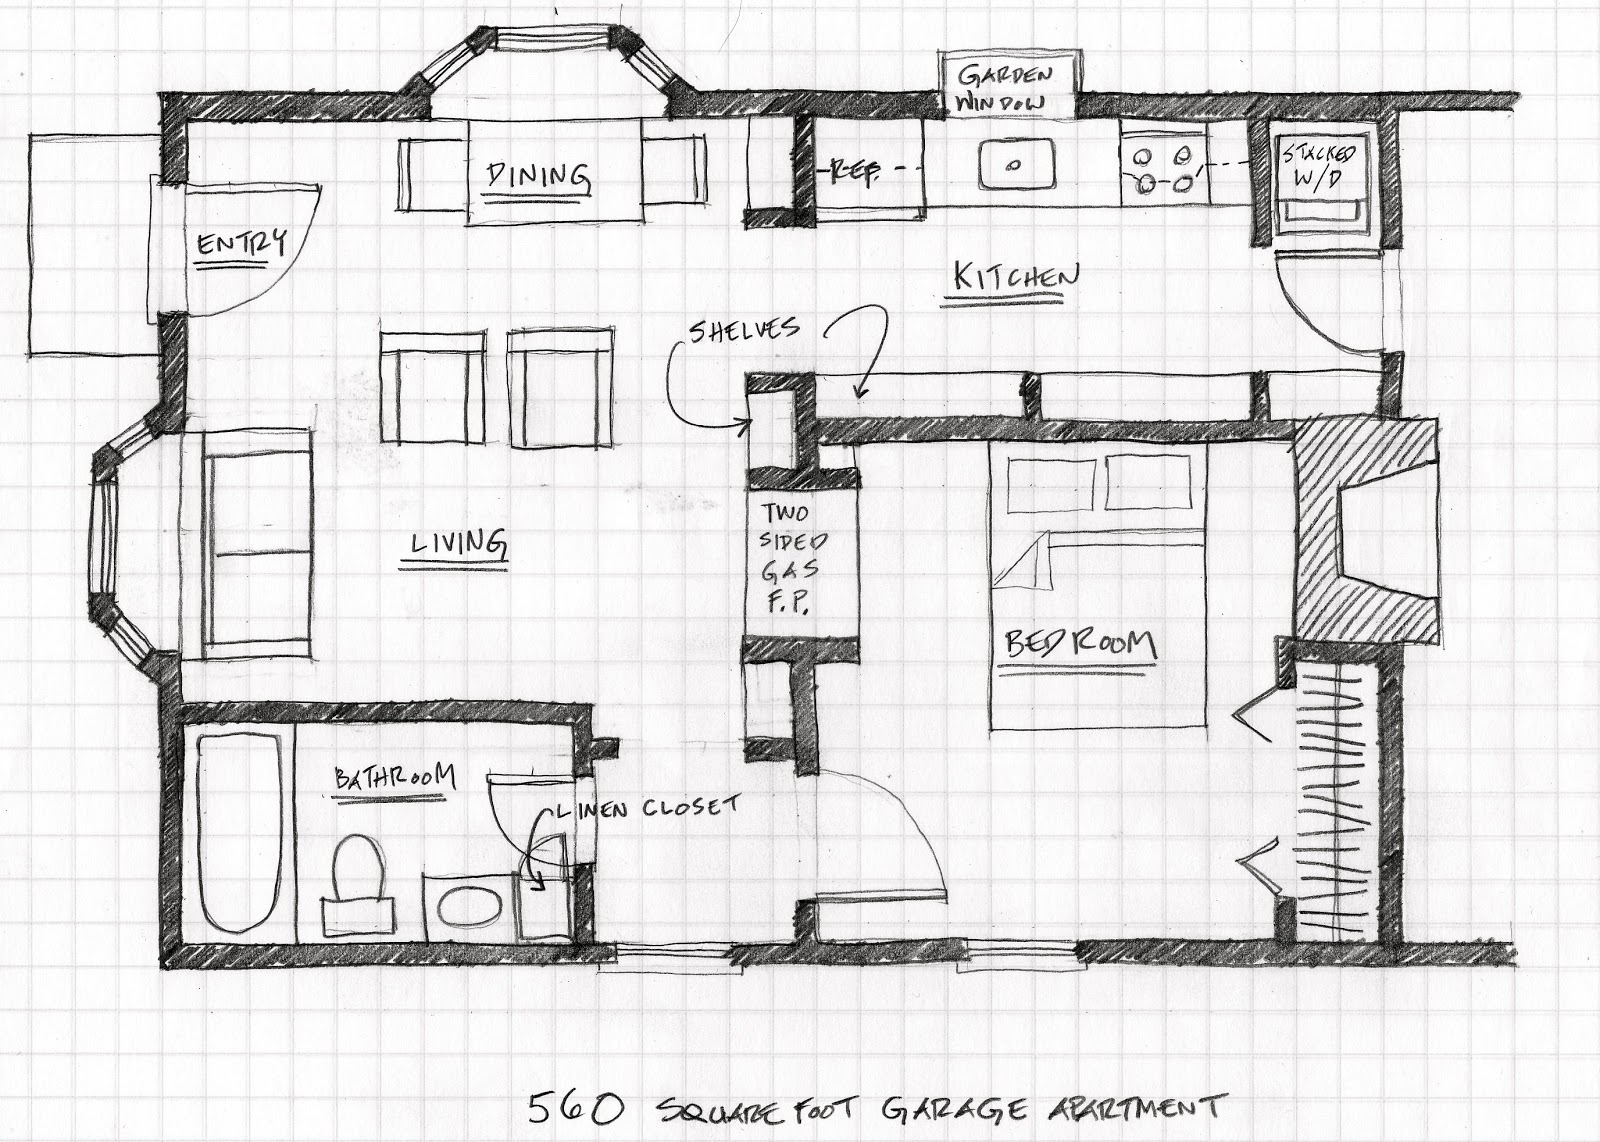 Small scale homes floor plans for garage to apartment for Small garage apartment plans